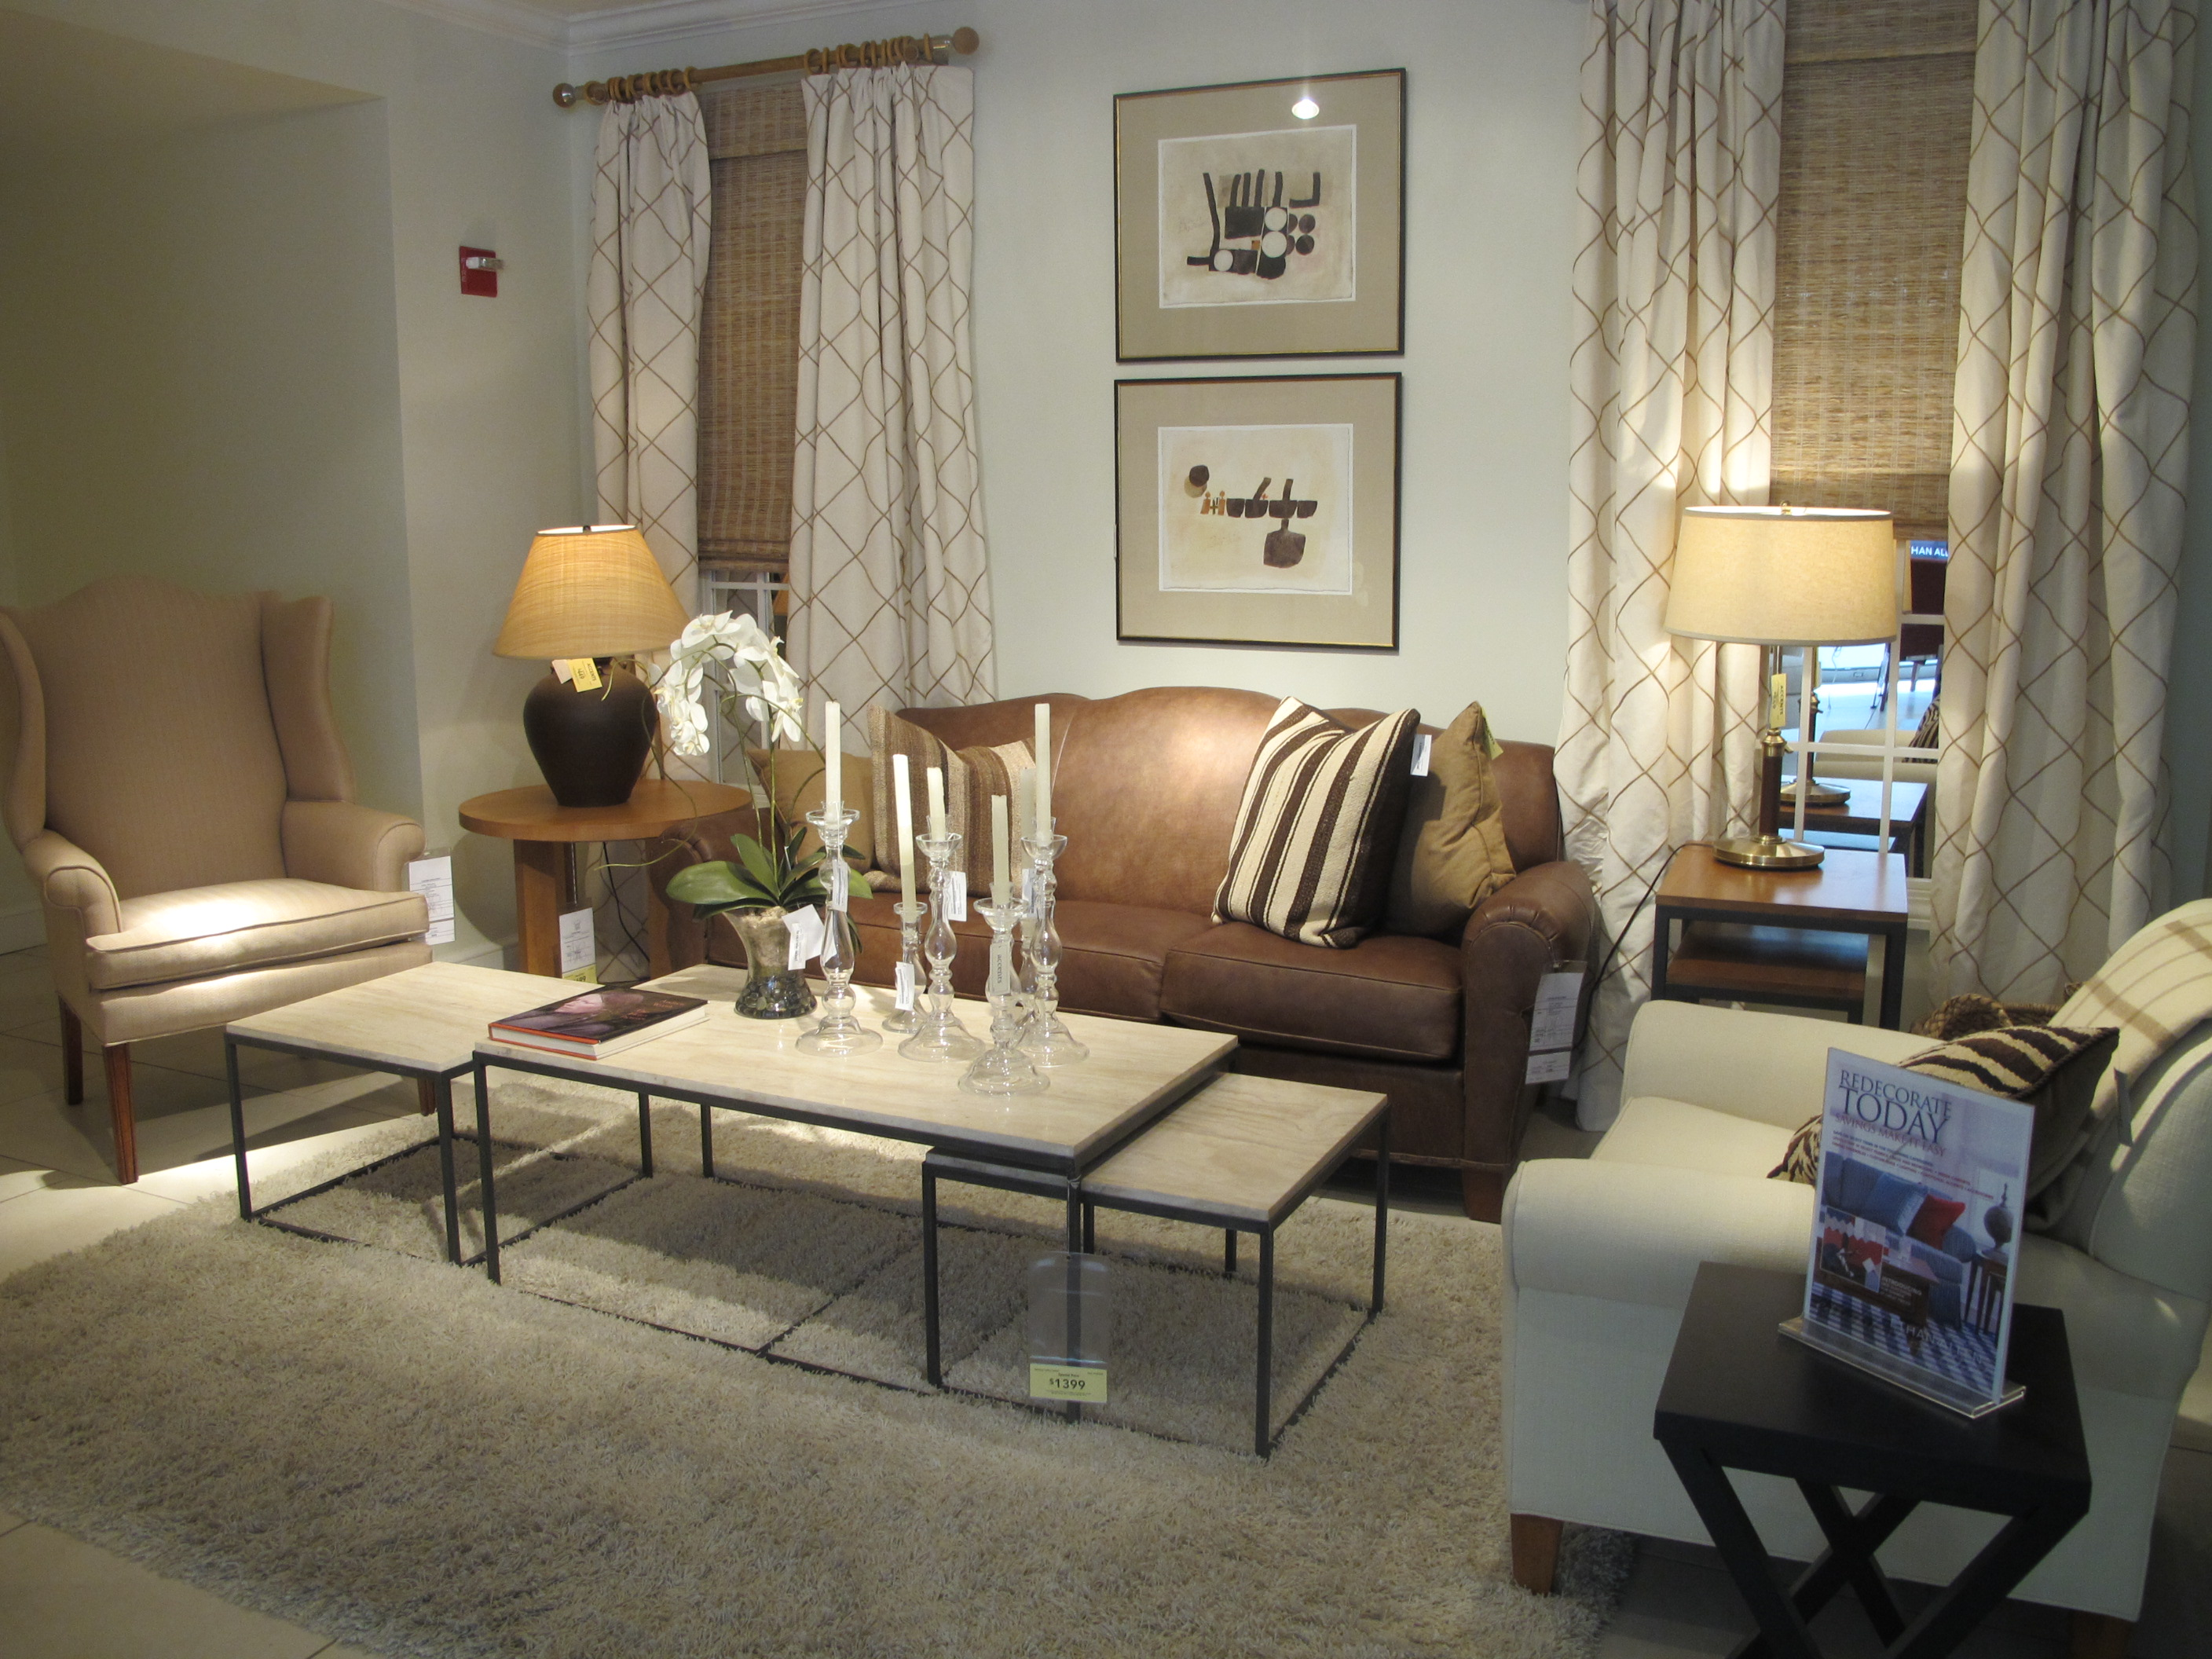 ethan allen furniture store showroom